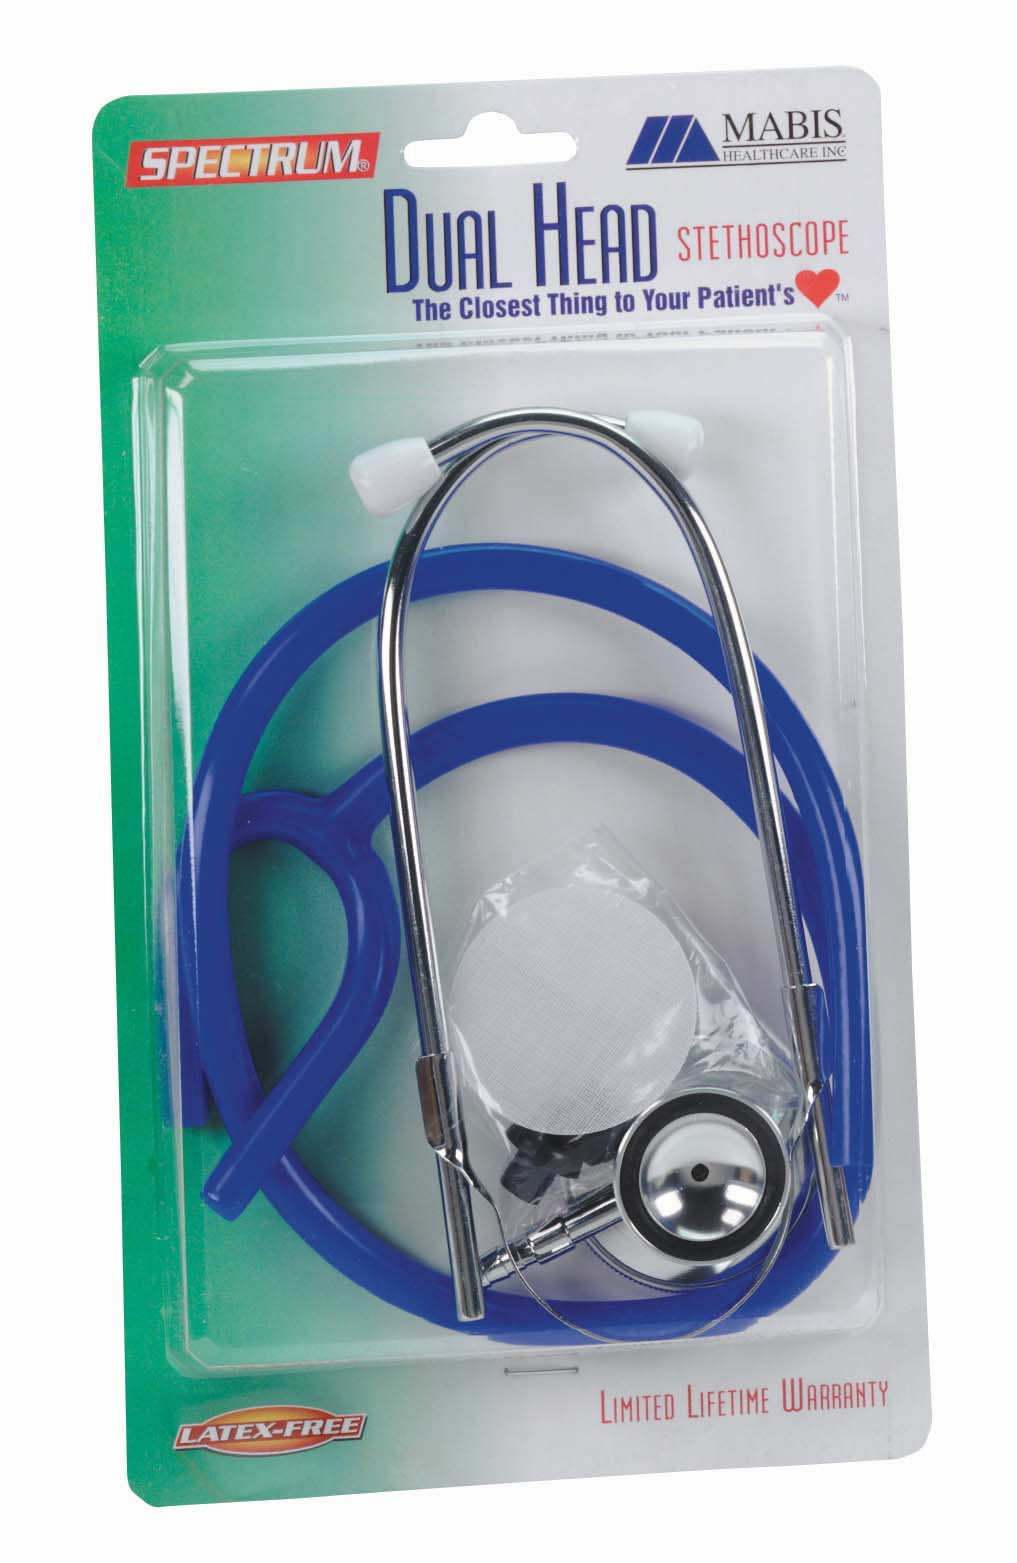 spectrum-dual-head-stethoscope-adult-slider-pack-hunter-green-10-429-250-lr.jpg